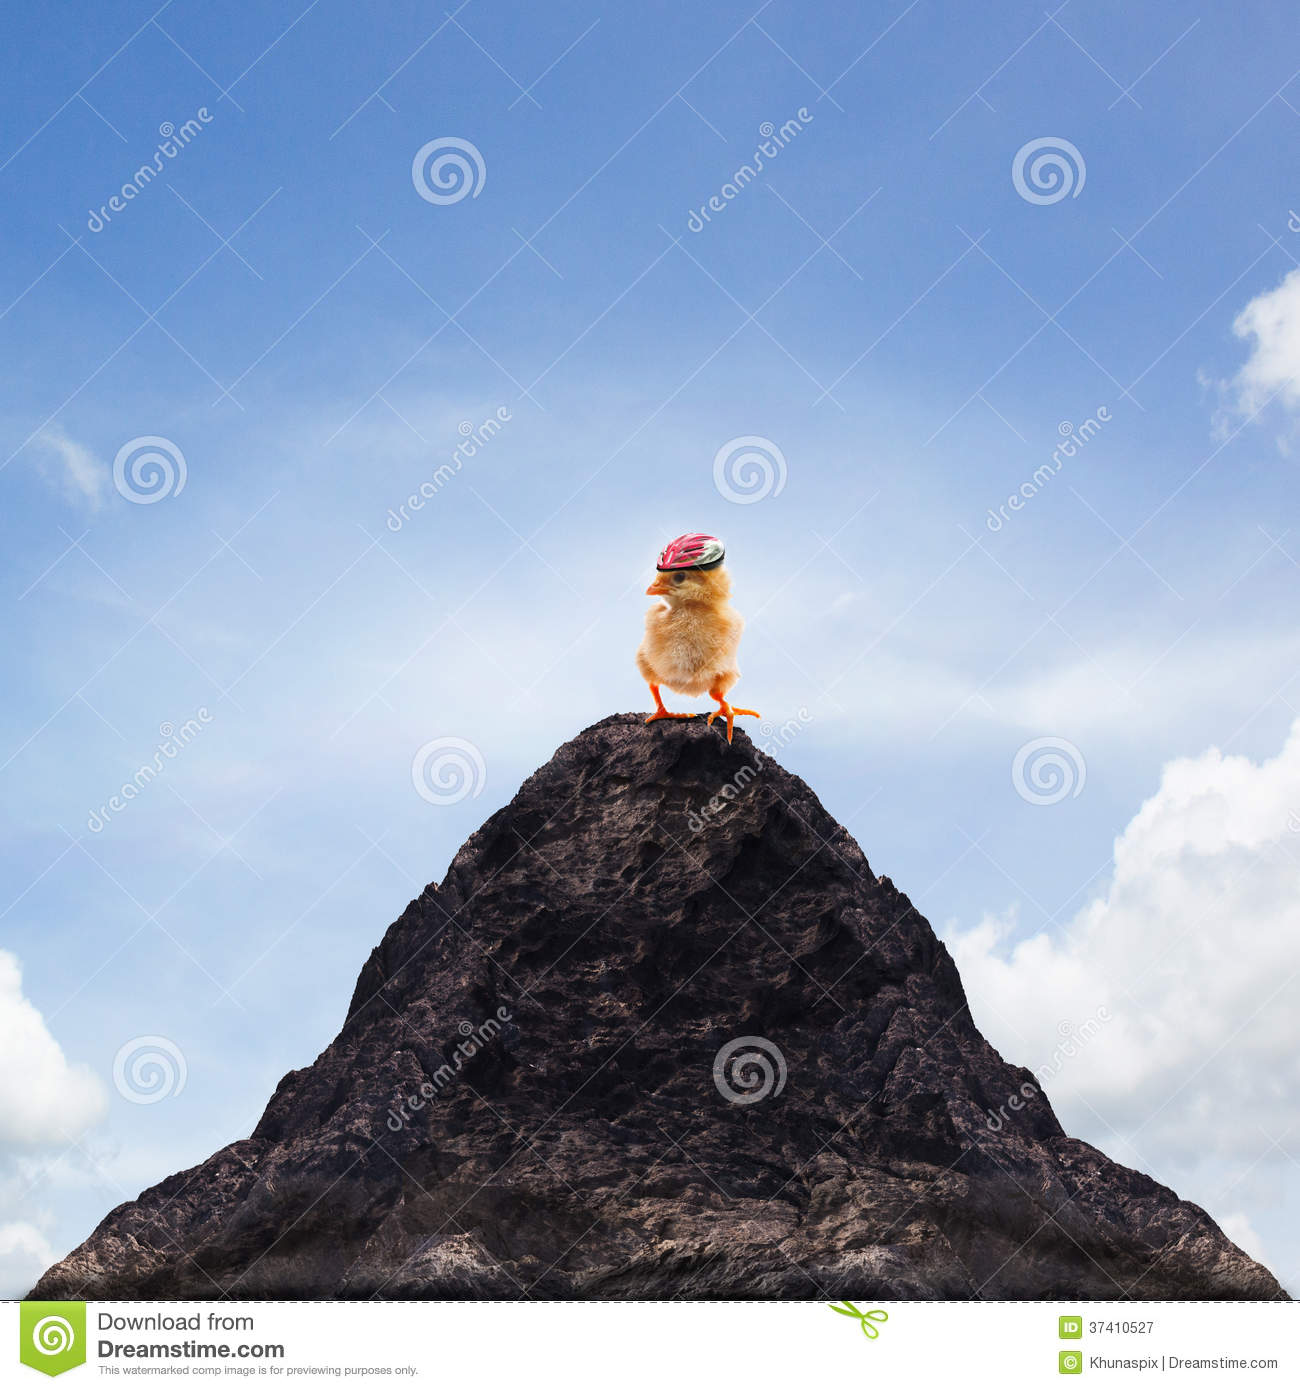 Young Kid On Top Of The Mountain Stock Image ...